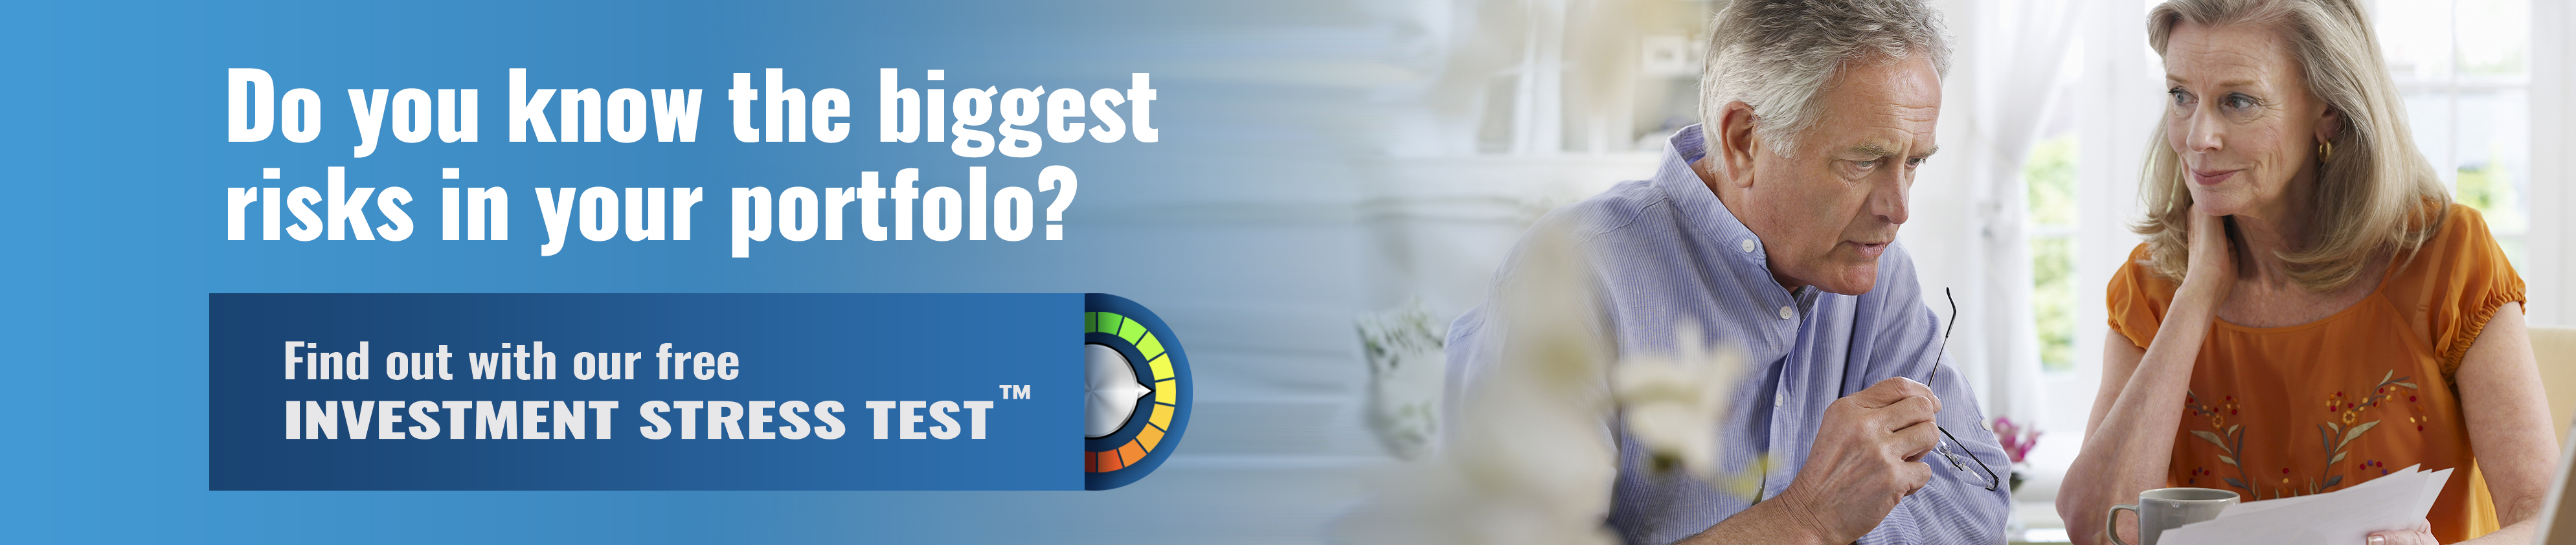 Do you know the biggest risks in your portfolio? Find out with our free Investment Stress Test.